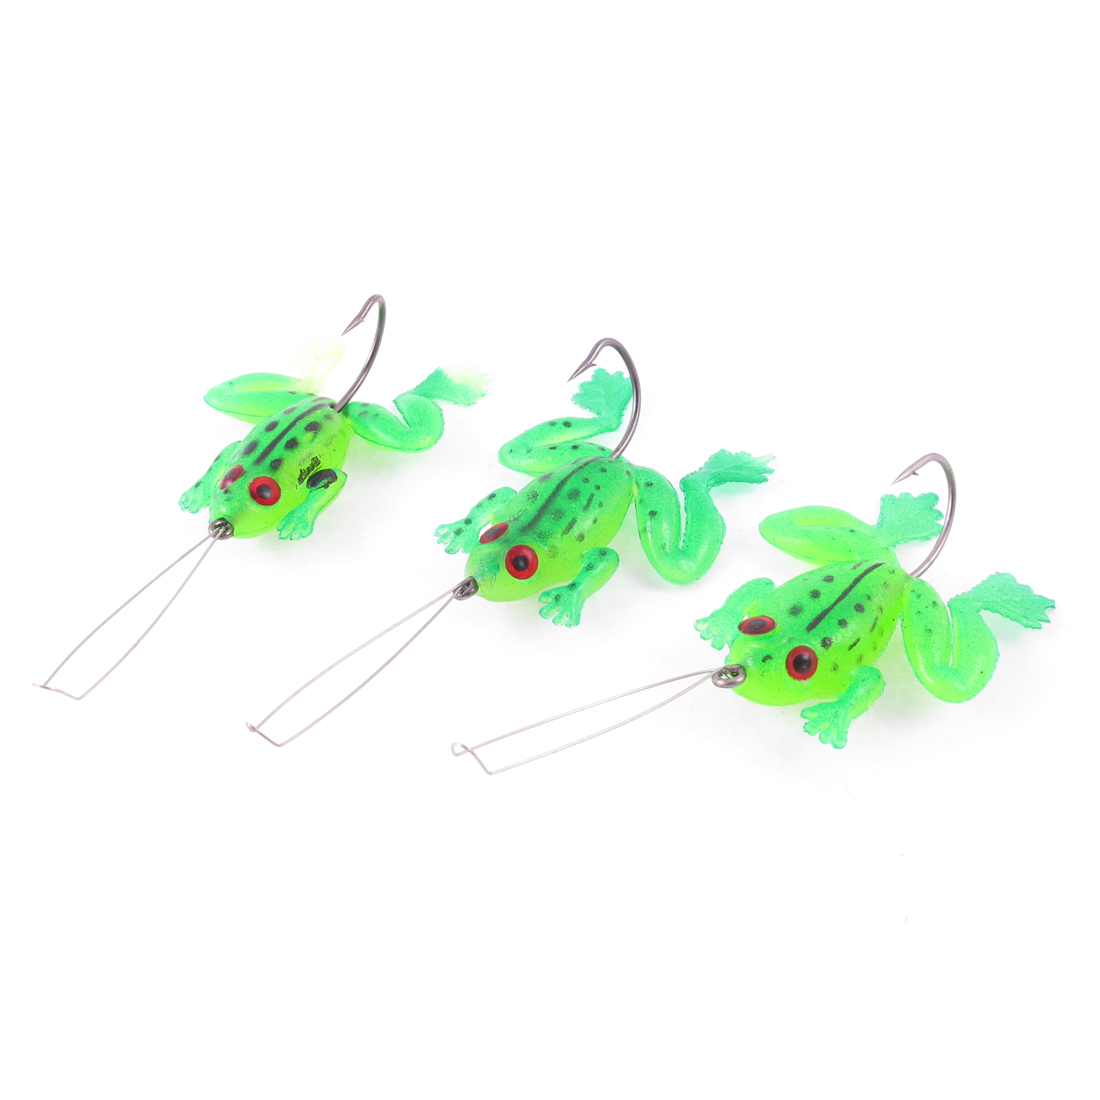 Sea River Rubber Fishing Frog Lure Bait Fish Hooks Line 3 Pcs Green